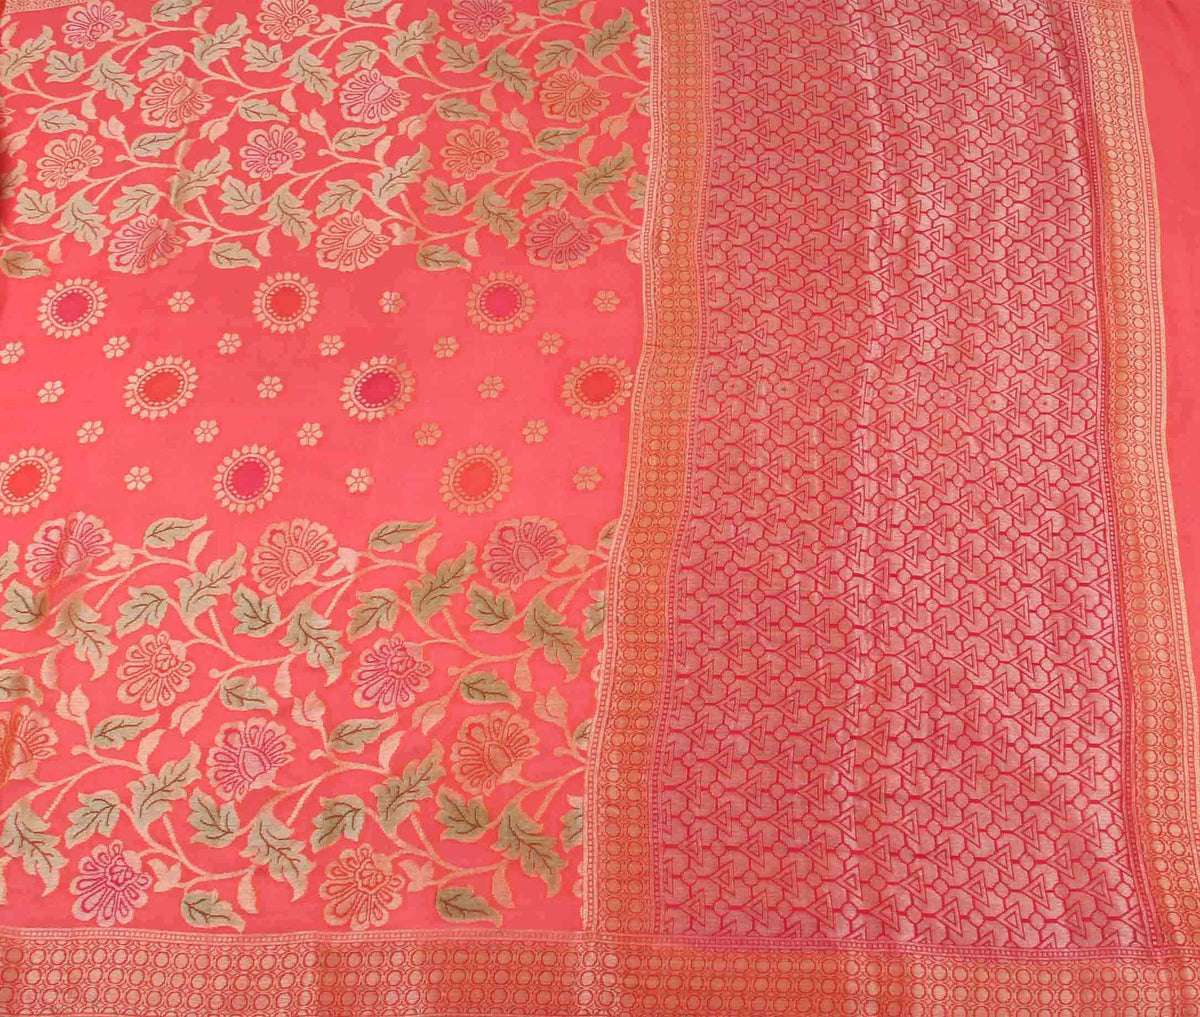 Peach Khaddi Georgette Banarasi Saree with floral jaal (2) flat